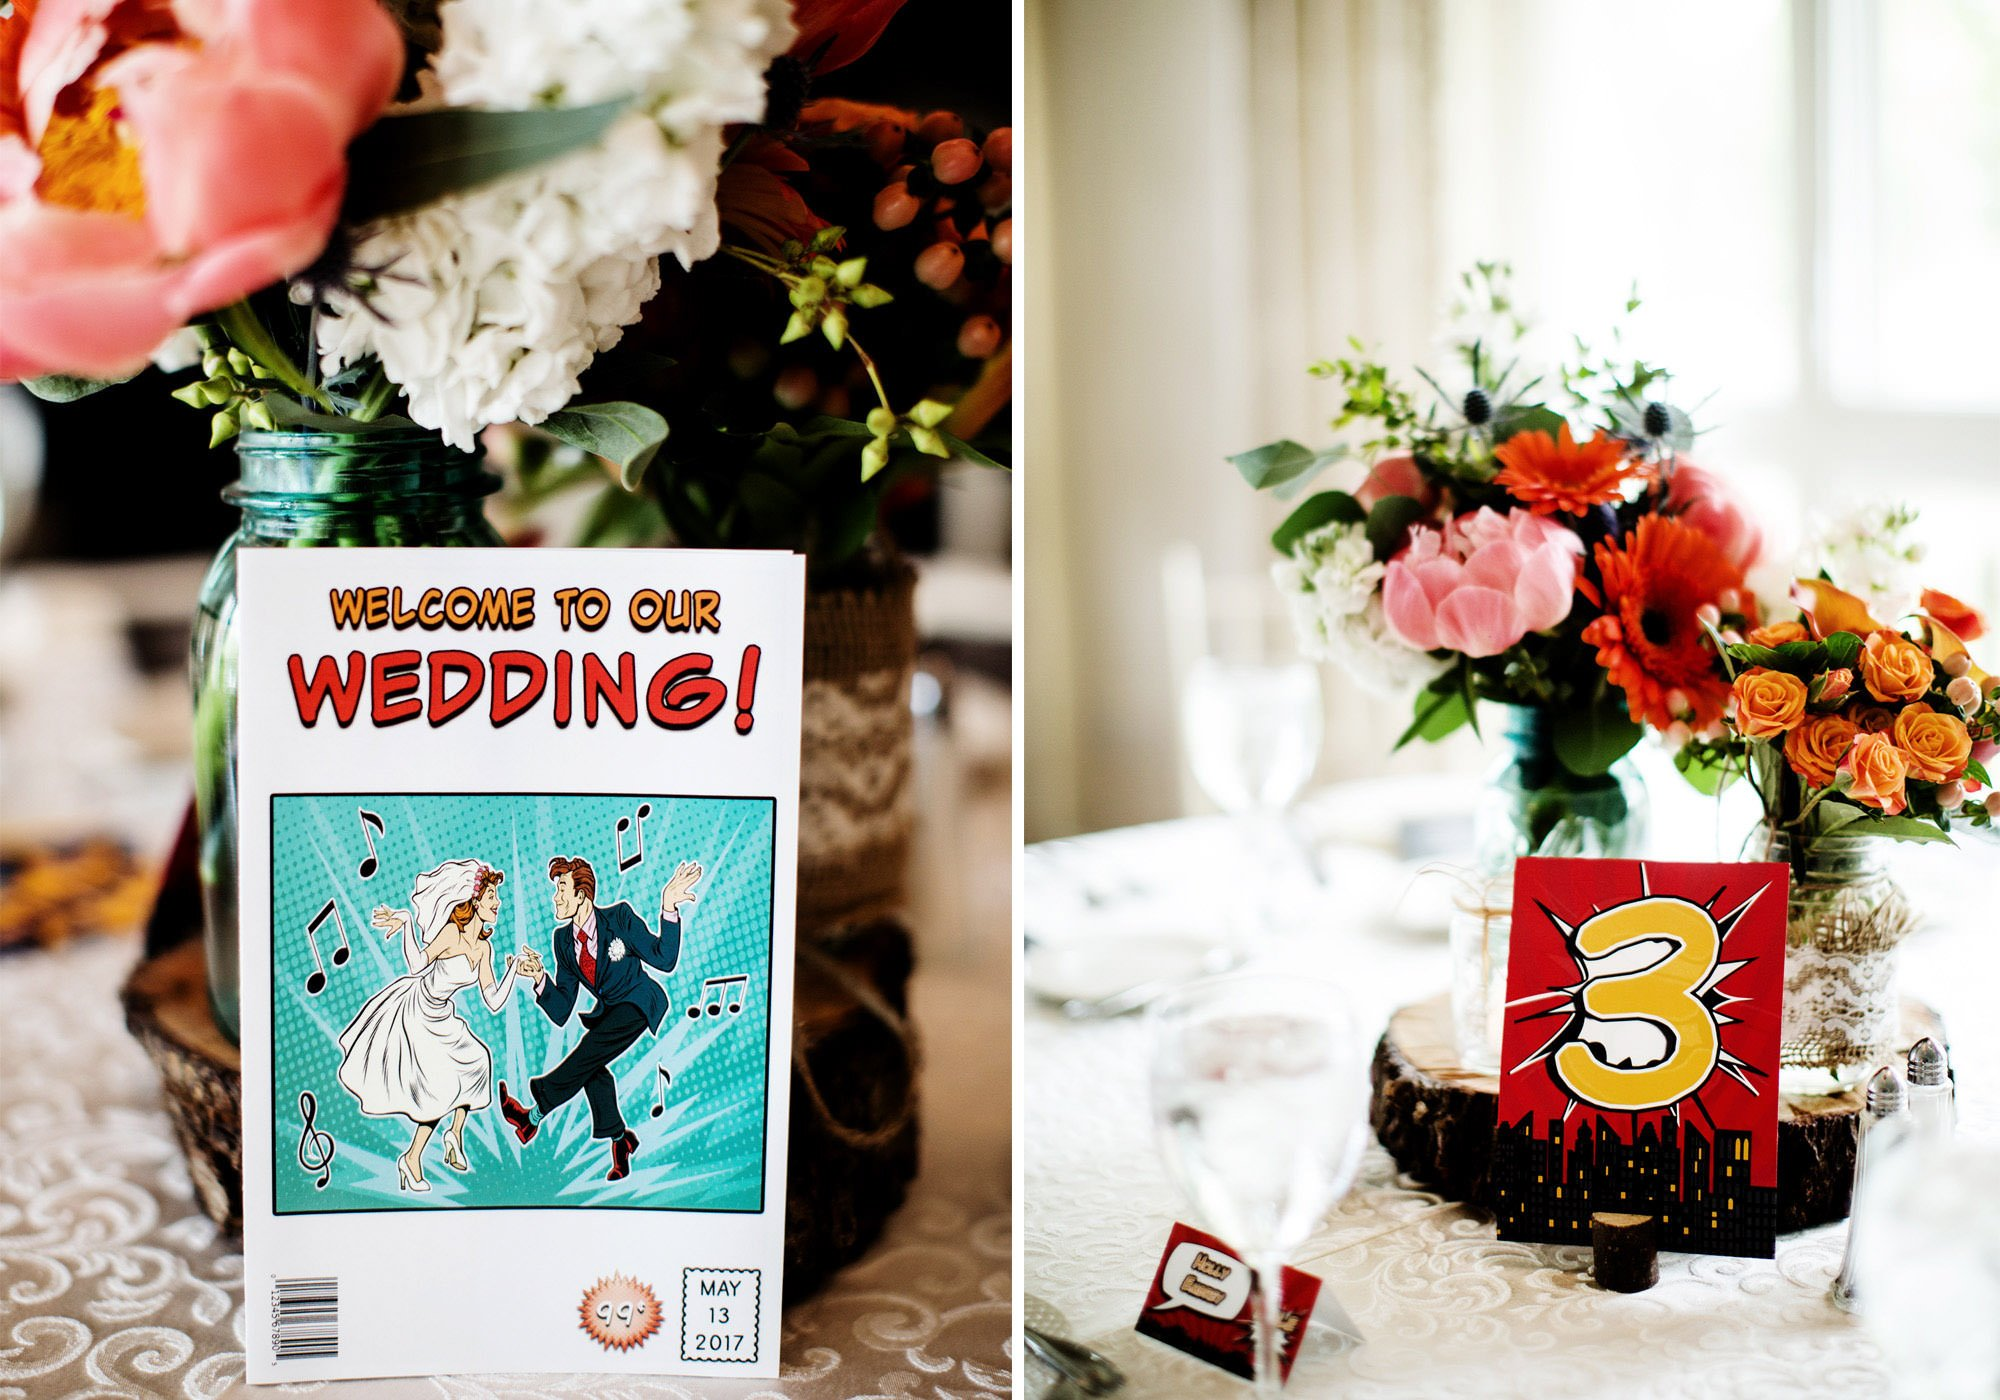 Details of the Superhero Theme at The Oaks Waterfront Inn and Events Wedding, Royal Oak, MD